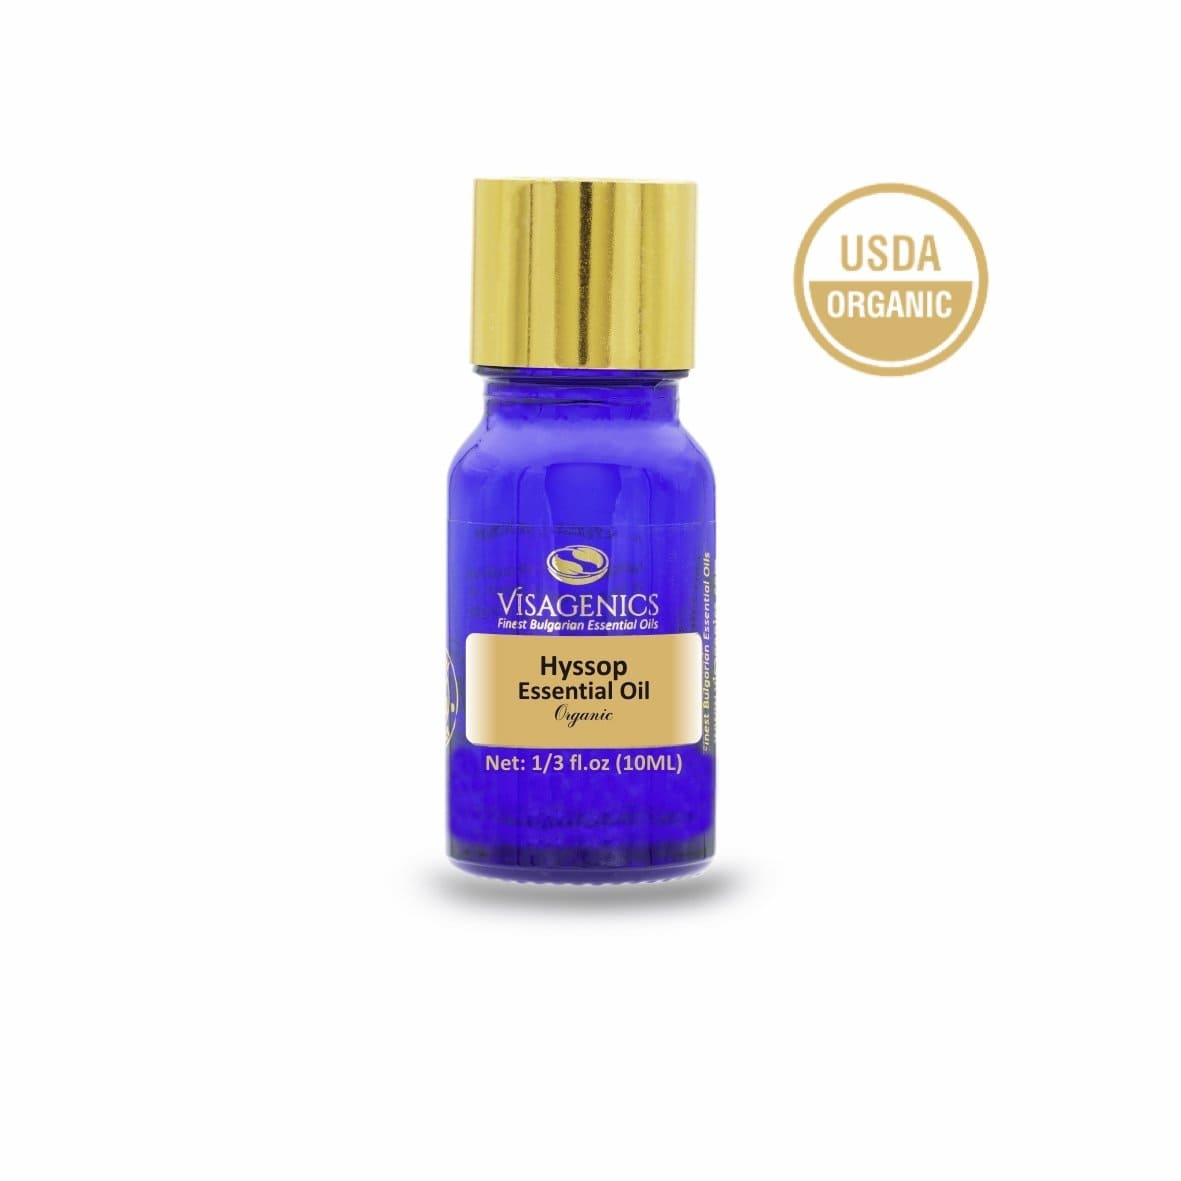 Hyssop Essential Oil | USDA Organic | 100% Pure | Exceptional